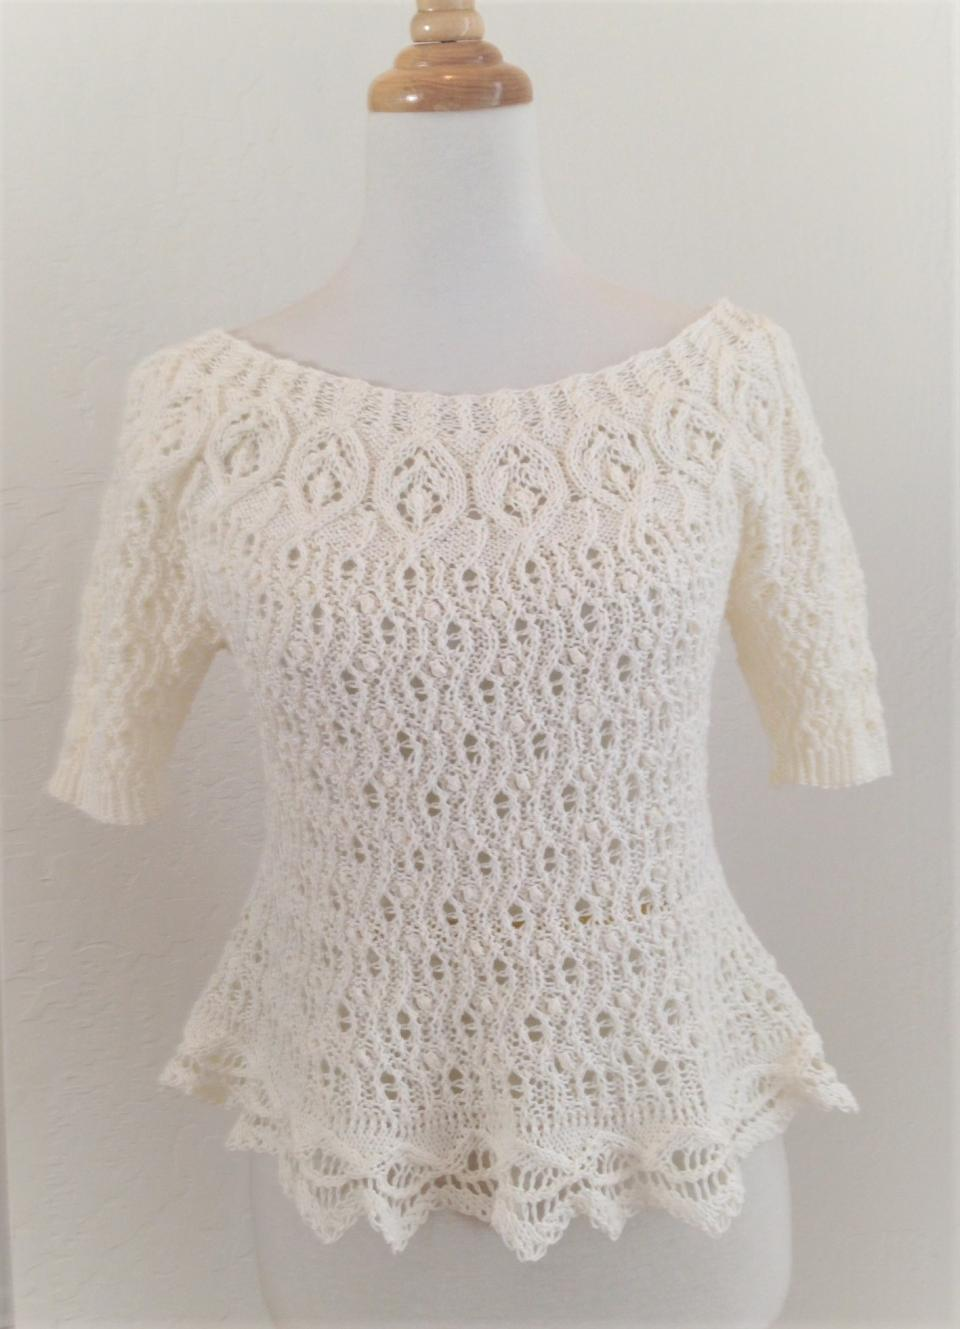 Tara Ison's knitted lace sweater